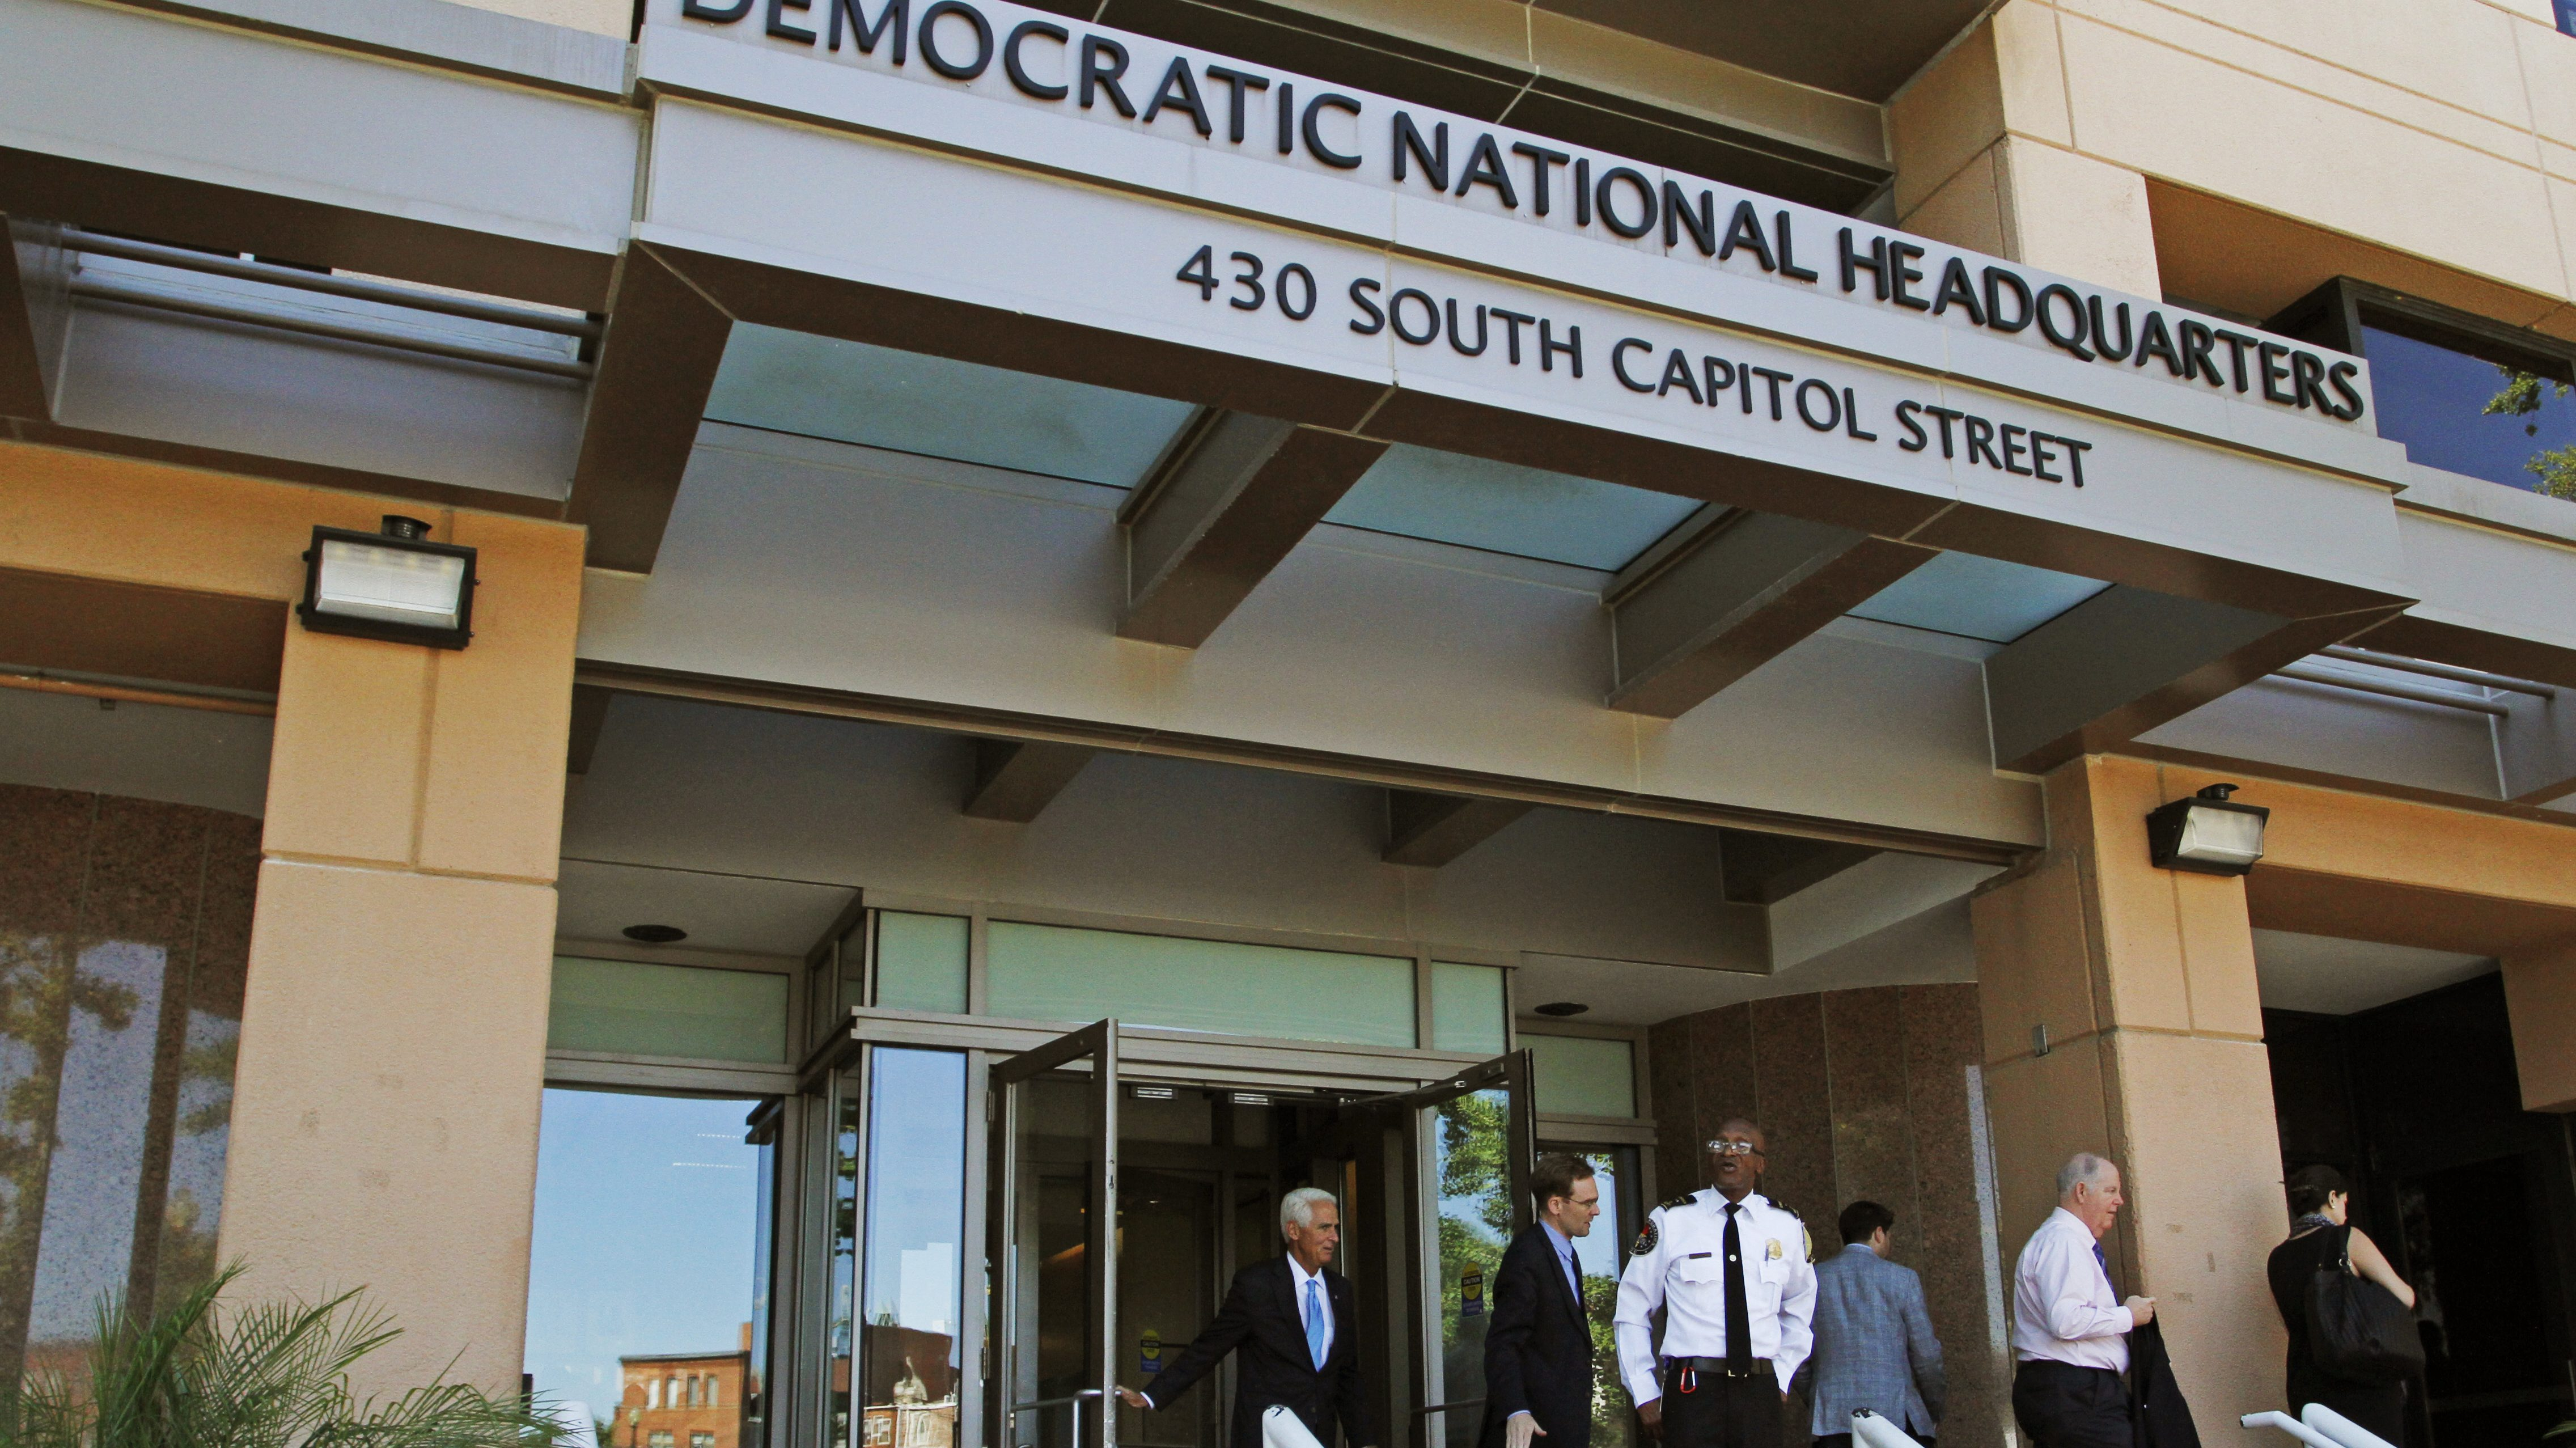 """People stand outside the Democratic National Committee (DNC) headquarters in Washington, Tuesday, June 14, 2016. Two """"sophisticated adversaries"""" linked to Russian intelligence services broke into the Democratic National Committee's computer networks and gained access to confidential emails, chats and opposition research on presumptive Republican nominee Donald Trump, the party and an outside analyst said Tuesday, June 14, 2016. (AP Photo/Paul Holston)"""